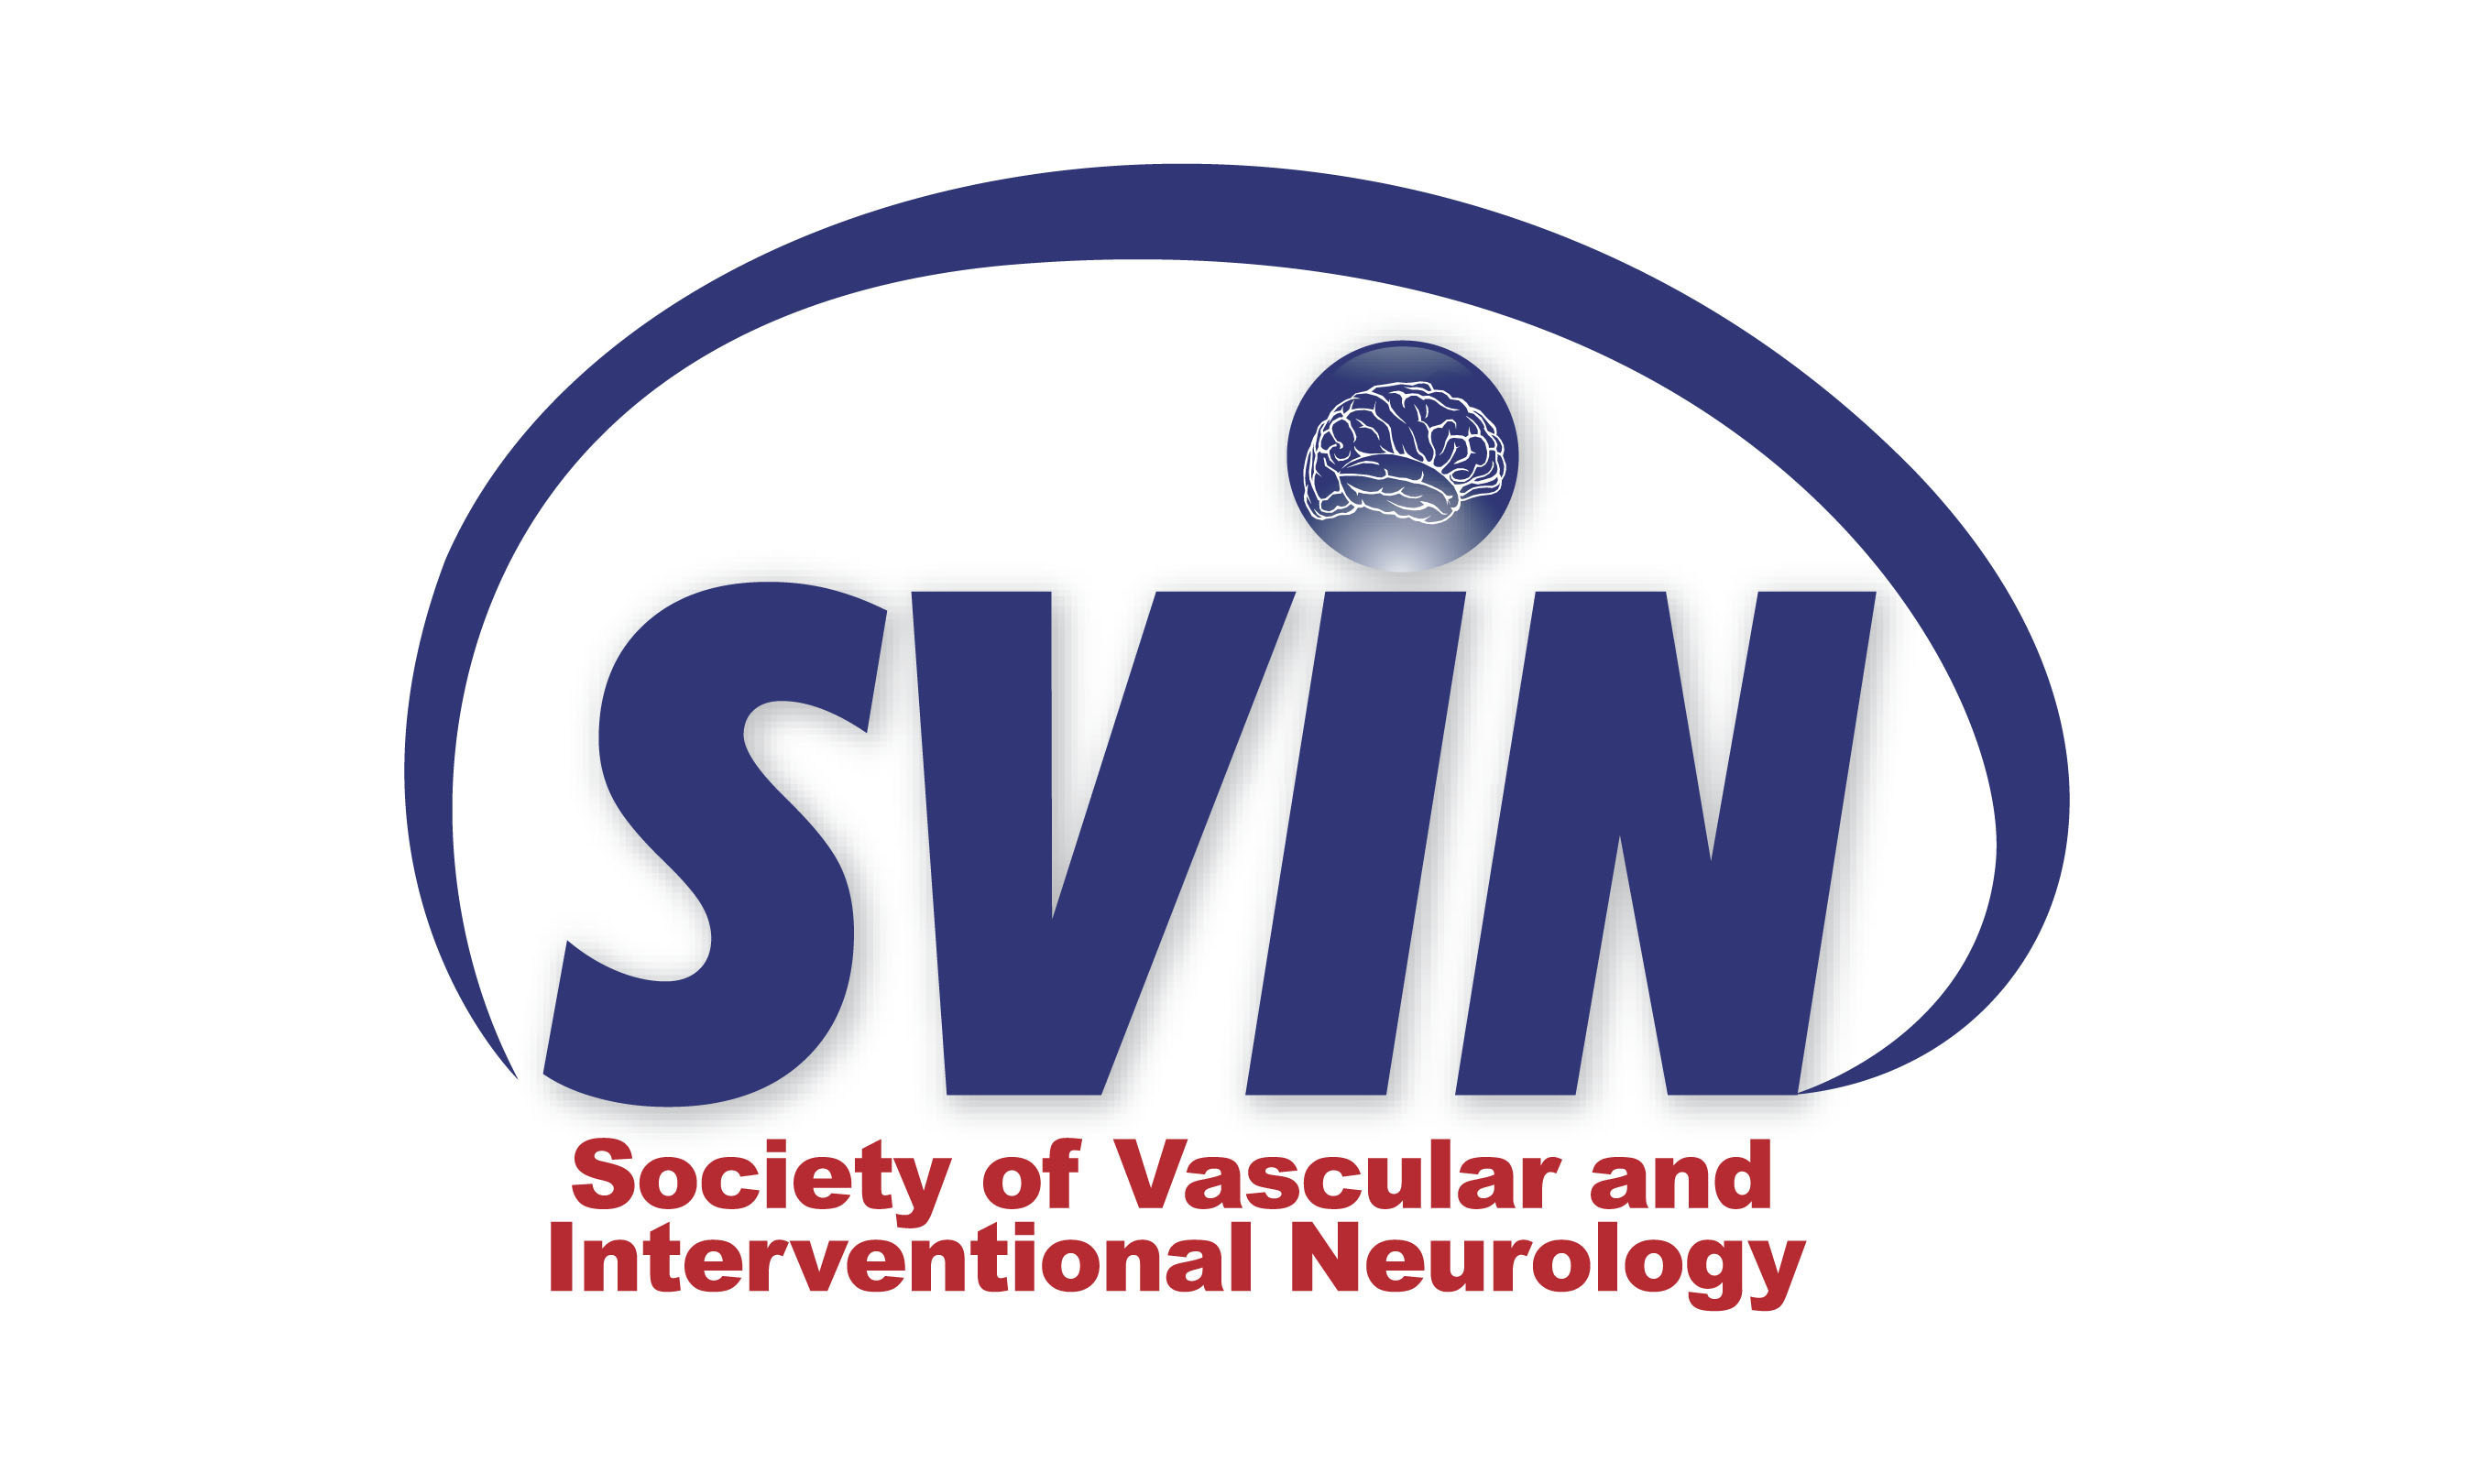 Society of Vascular and Interventional Neurology